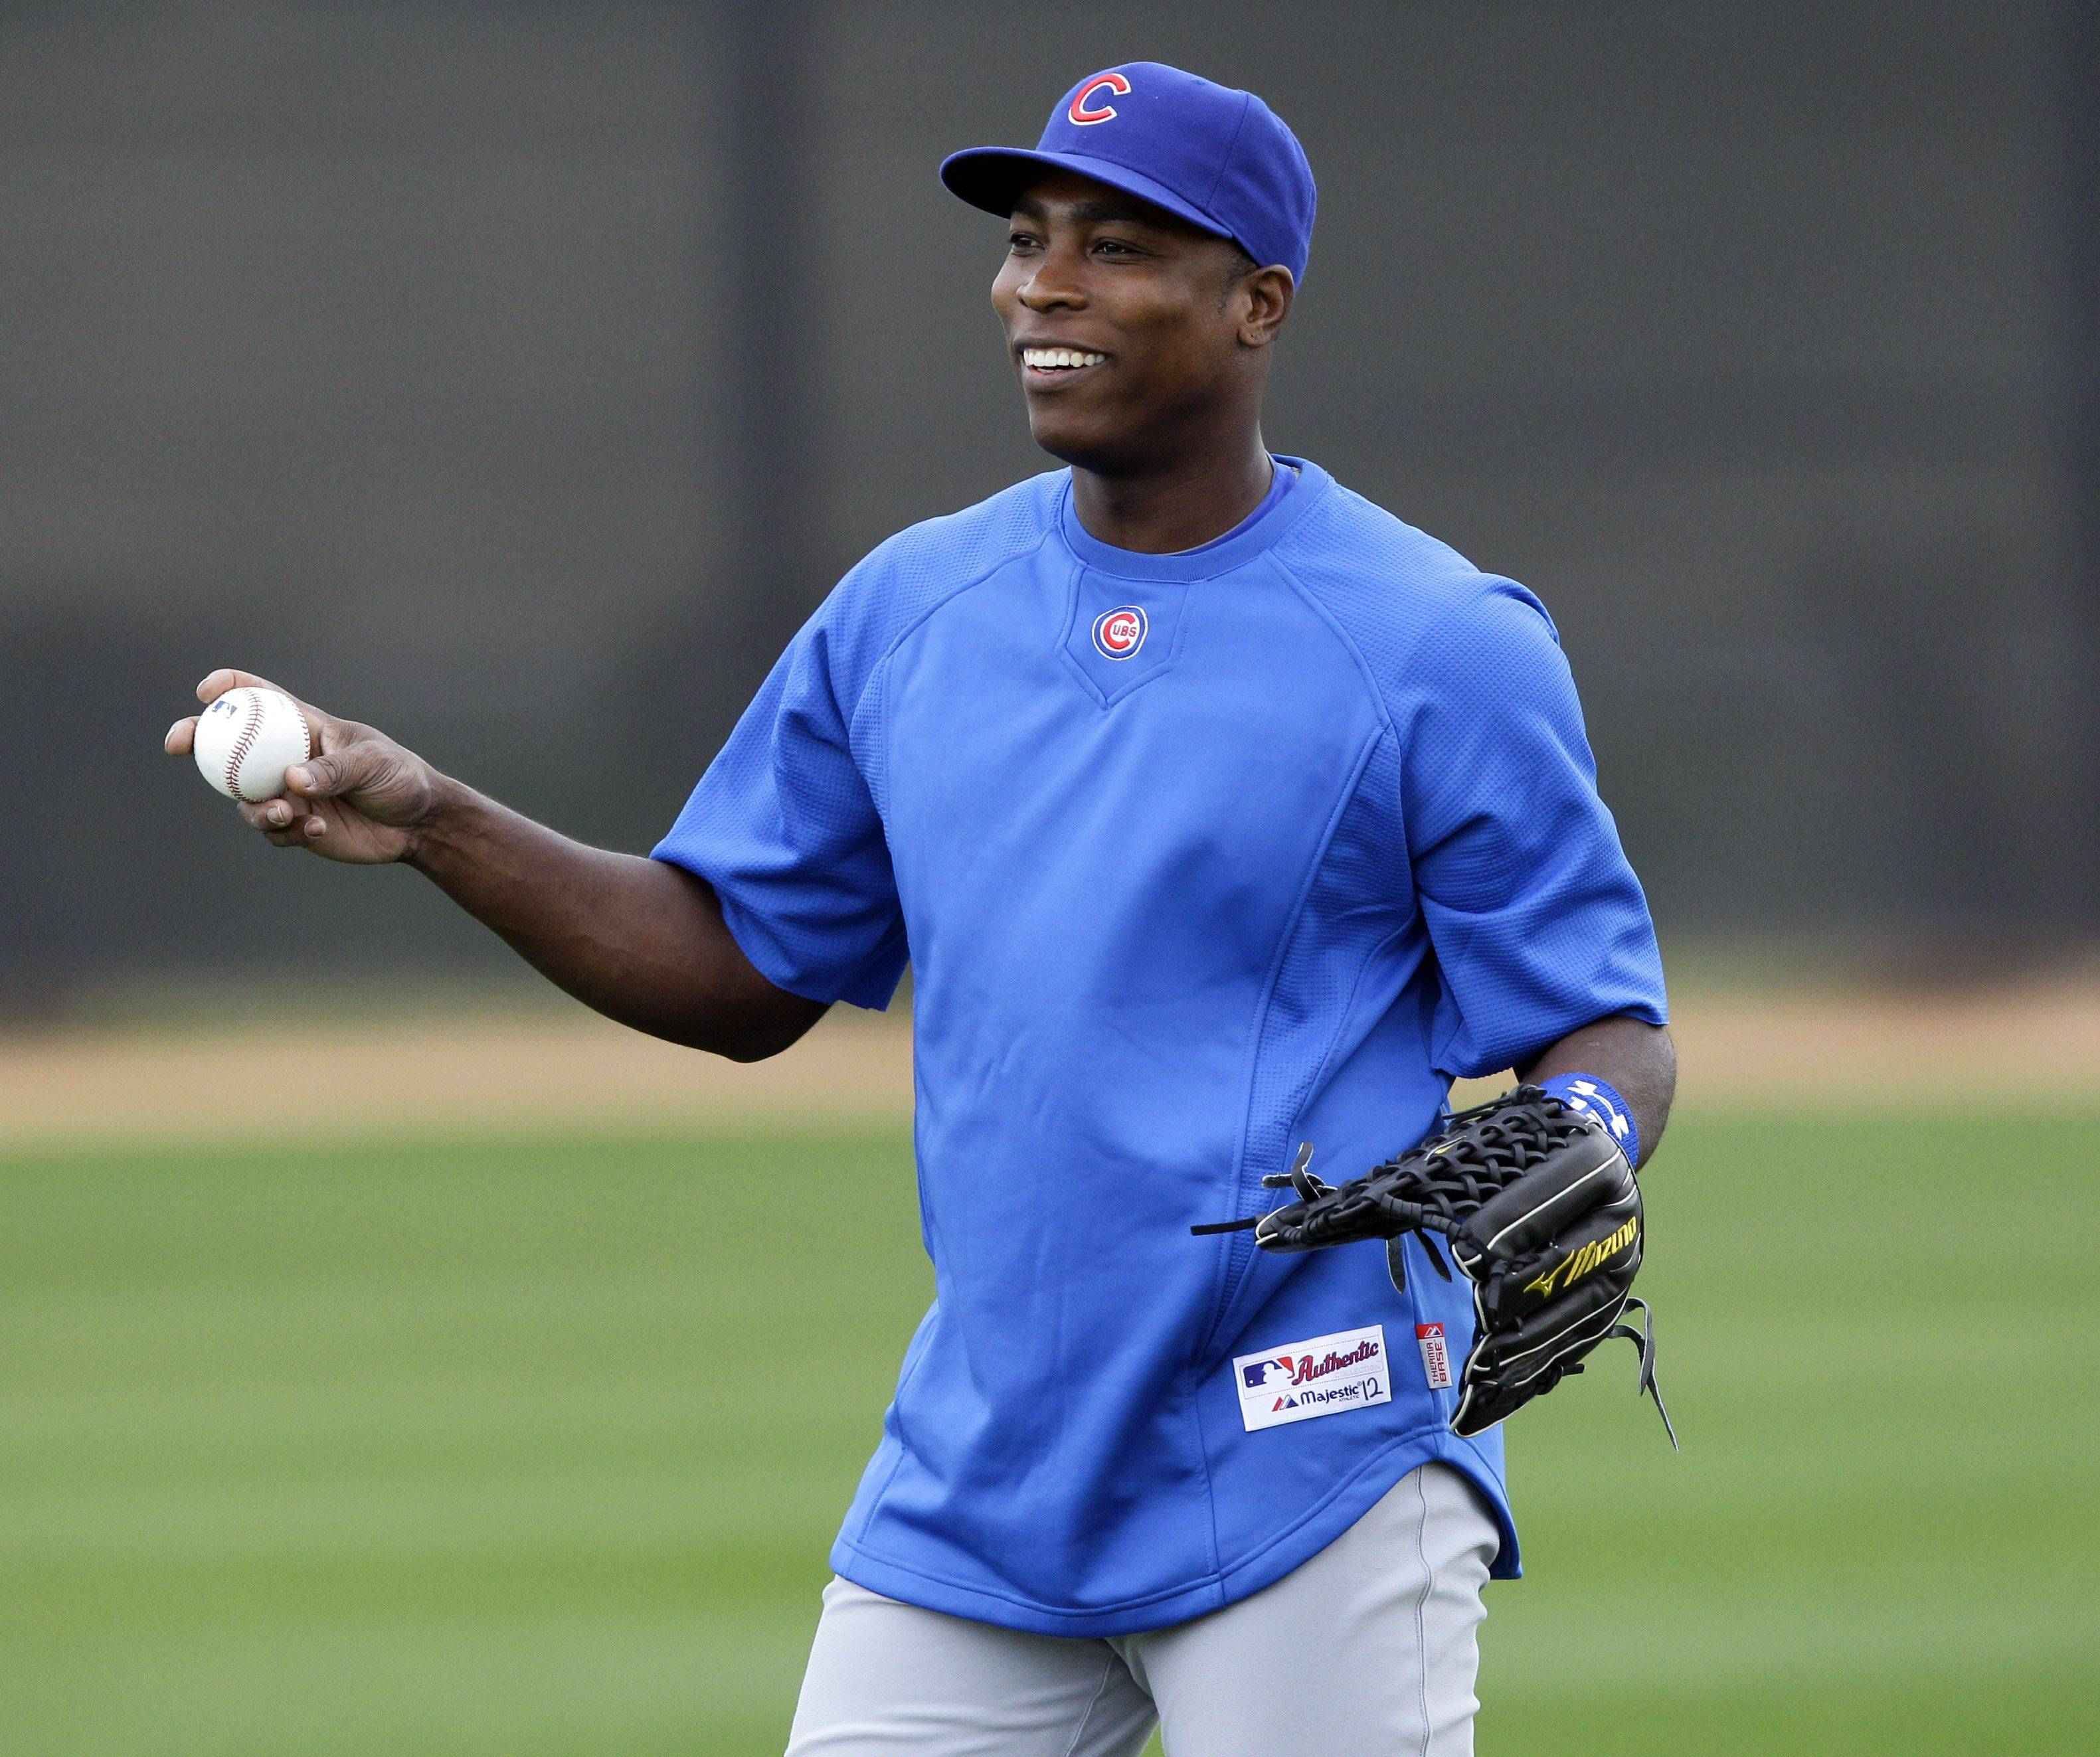 Outfielder Alfonso Soriano, here warming up at spring training camp in Mesa, Ariz., is halfway through his eight-year, $136 million contract with the Cubs.